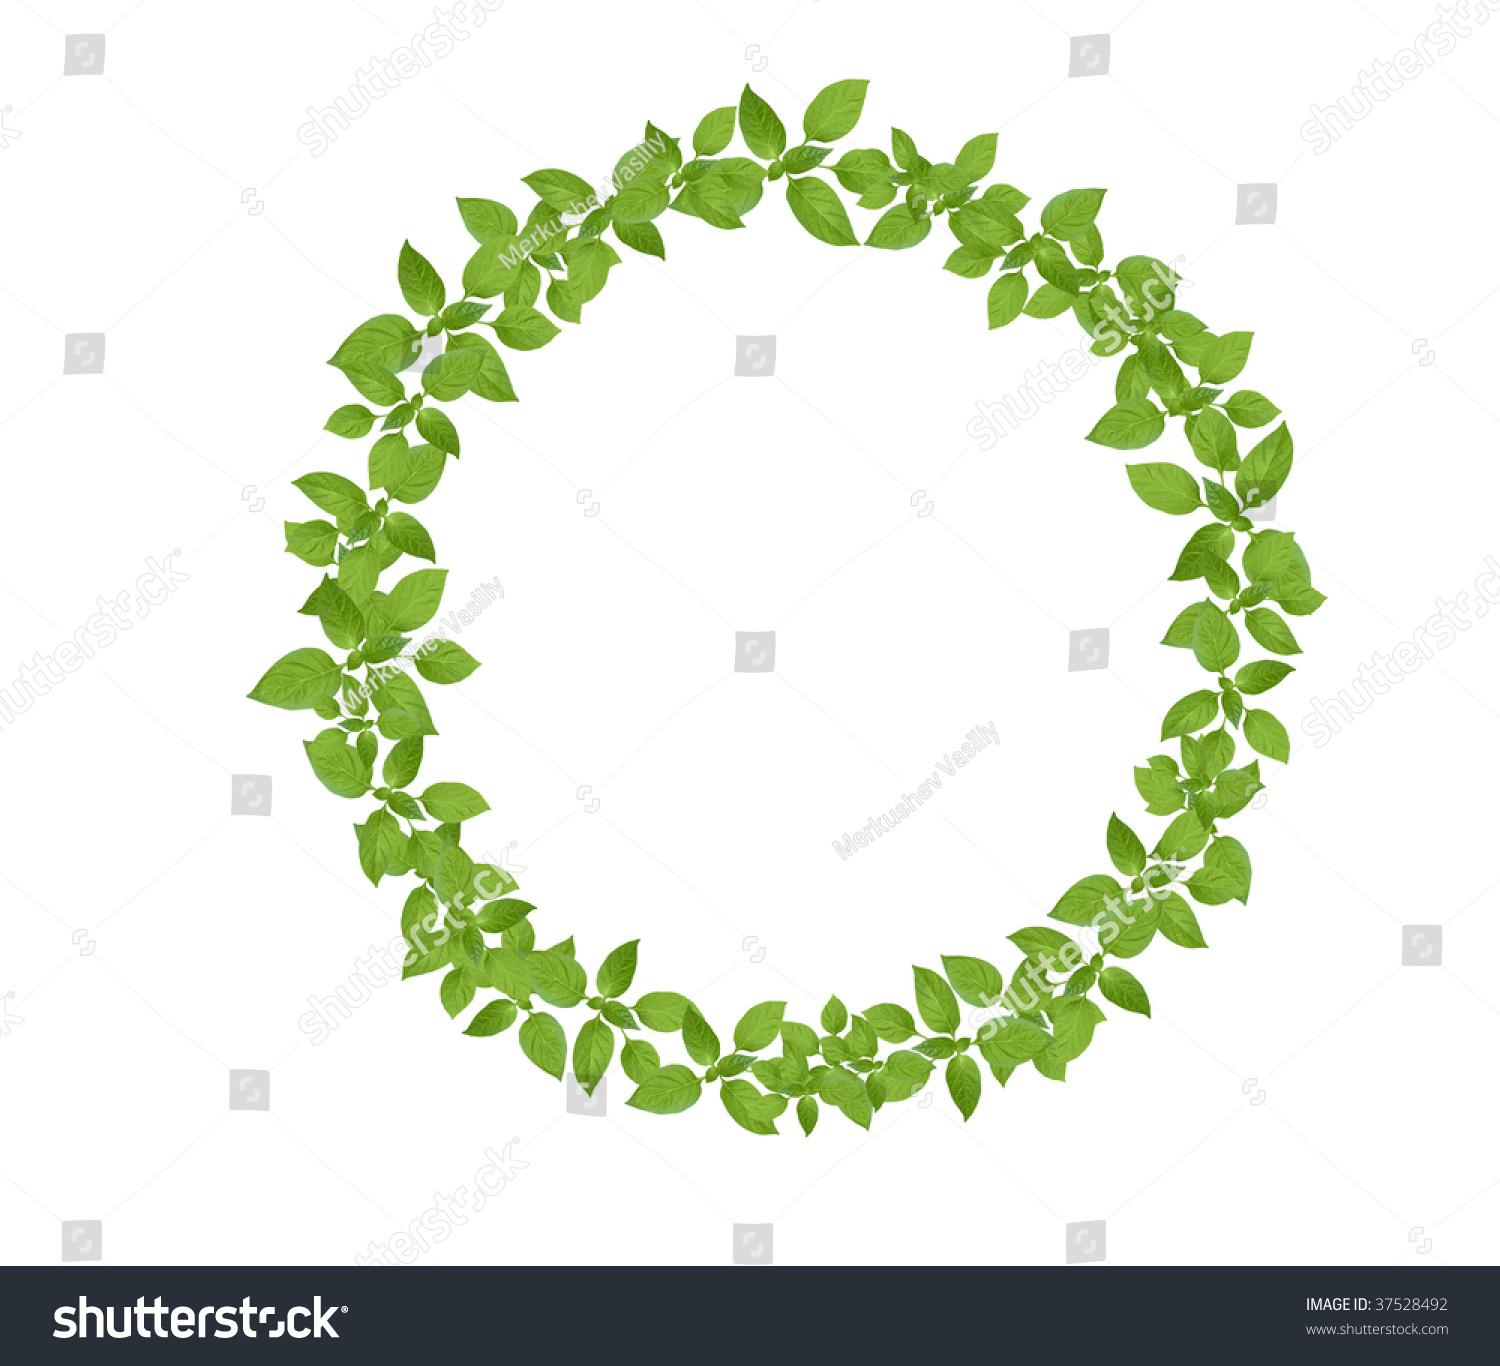 Floral design in circle stock vector image 75615991 - Green Leaves Circle